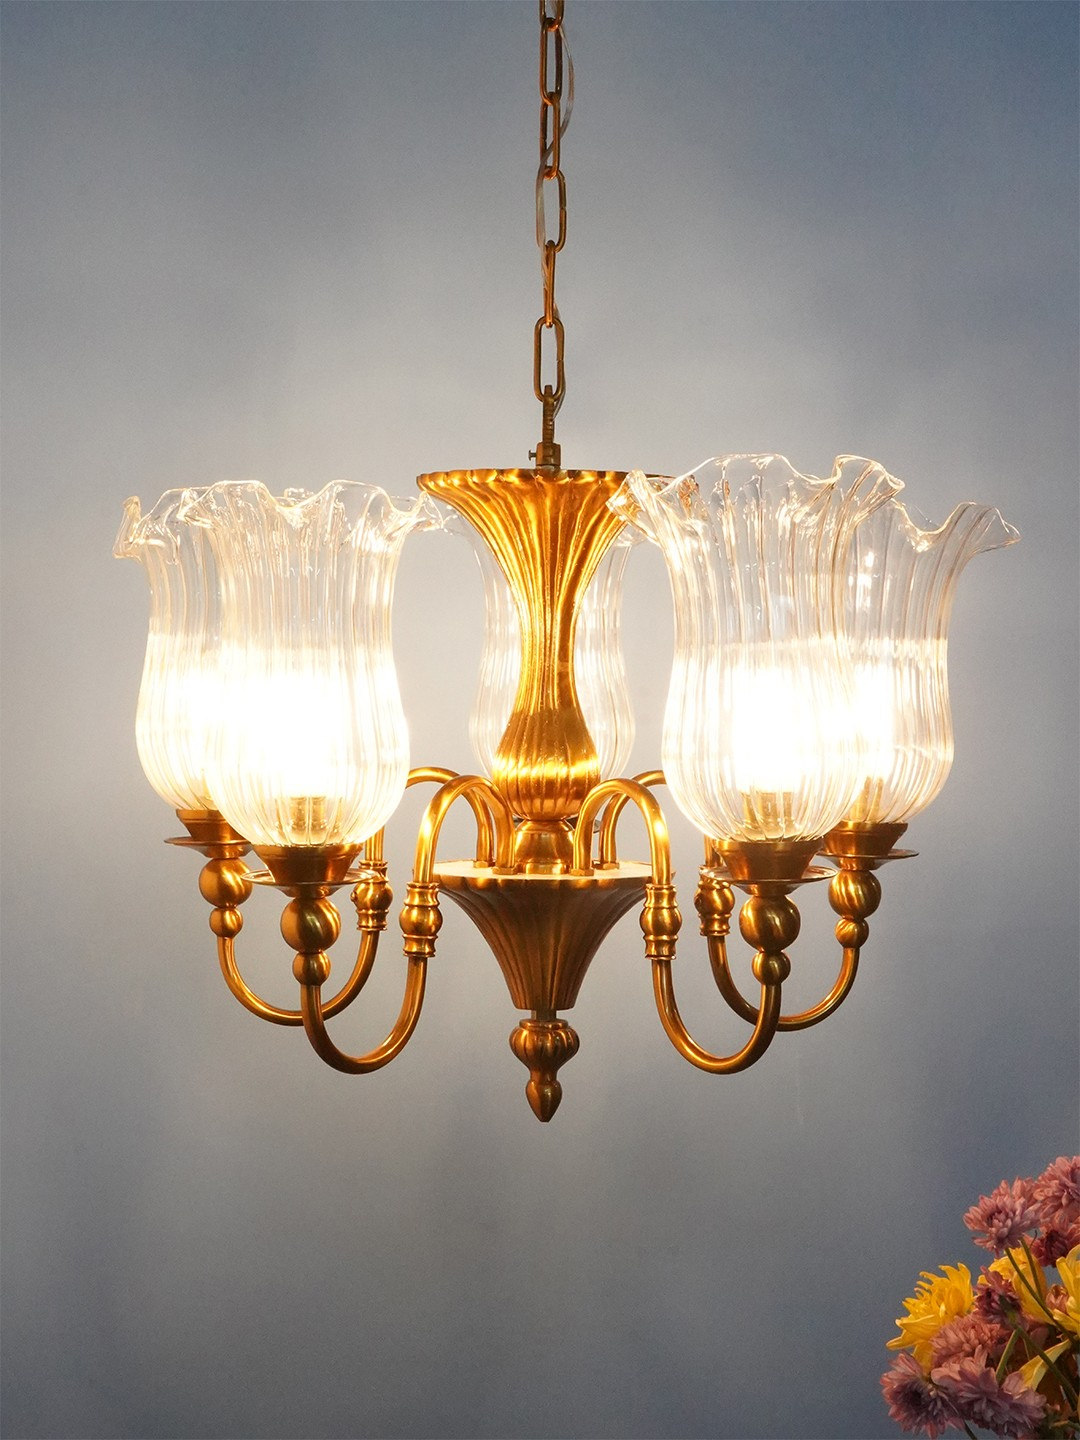 Victoria Cast Brass Antique Bronze Finished 5 Light Chandelier with Fluted Hand Blown Glass Shades